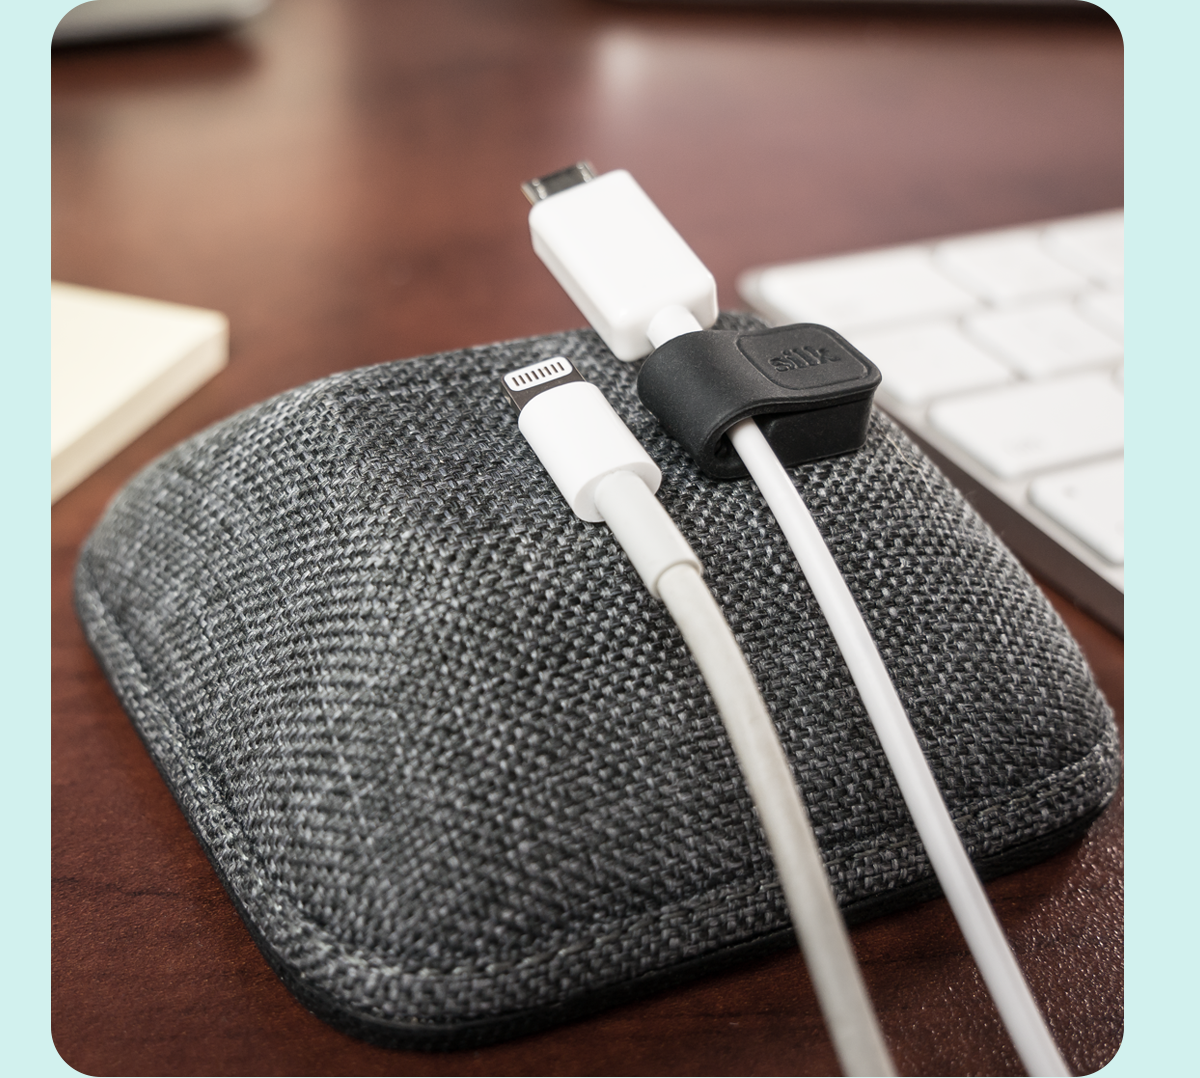 Cable Wrangler: Keep your cables where they belong